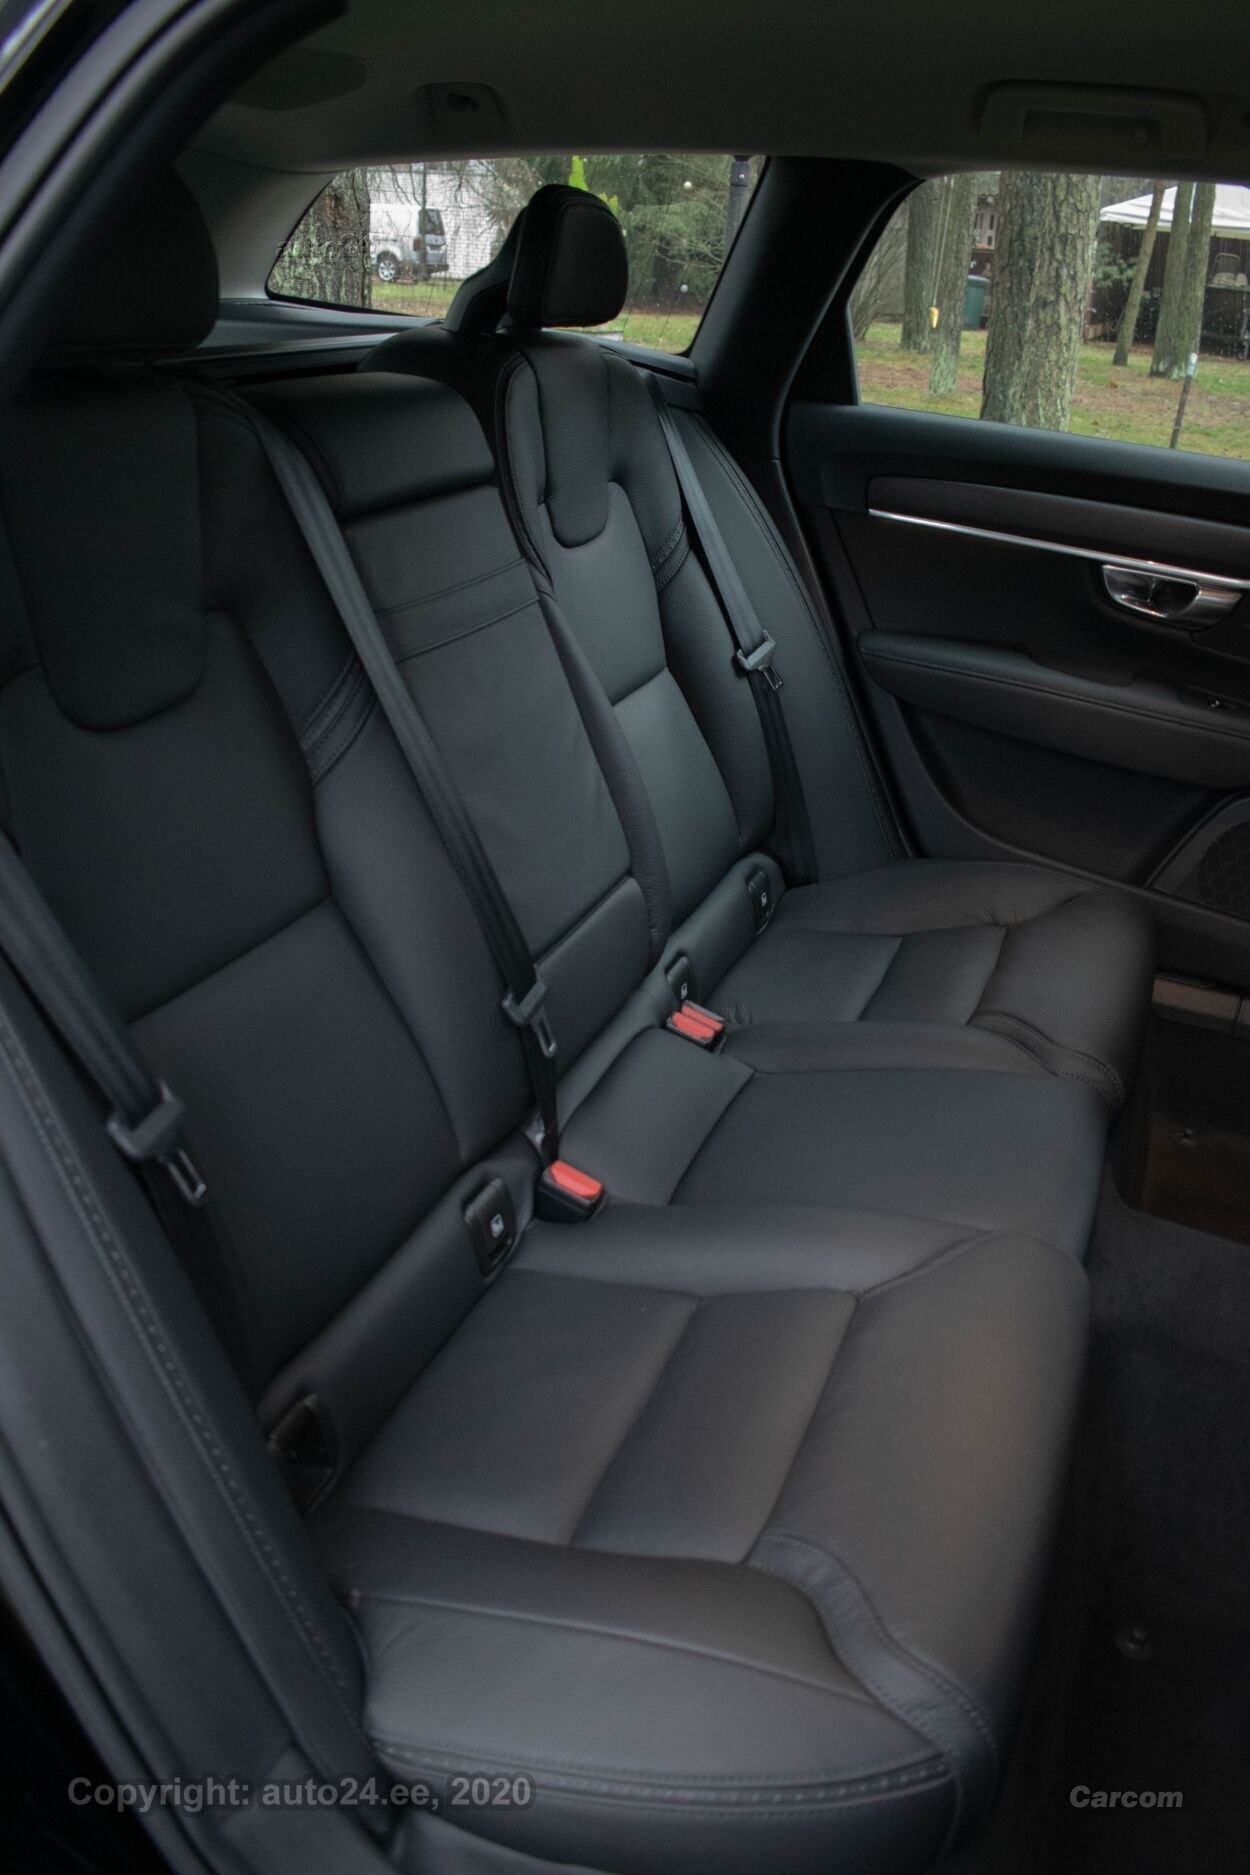 Volvo V90 Cross Country AWD Intelli Safe Winter PRO 2.0 D5 AWD 173kW